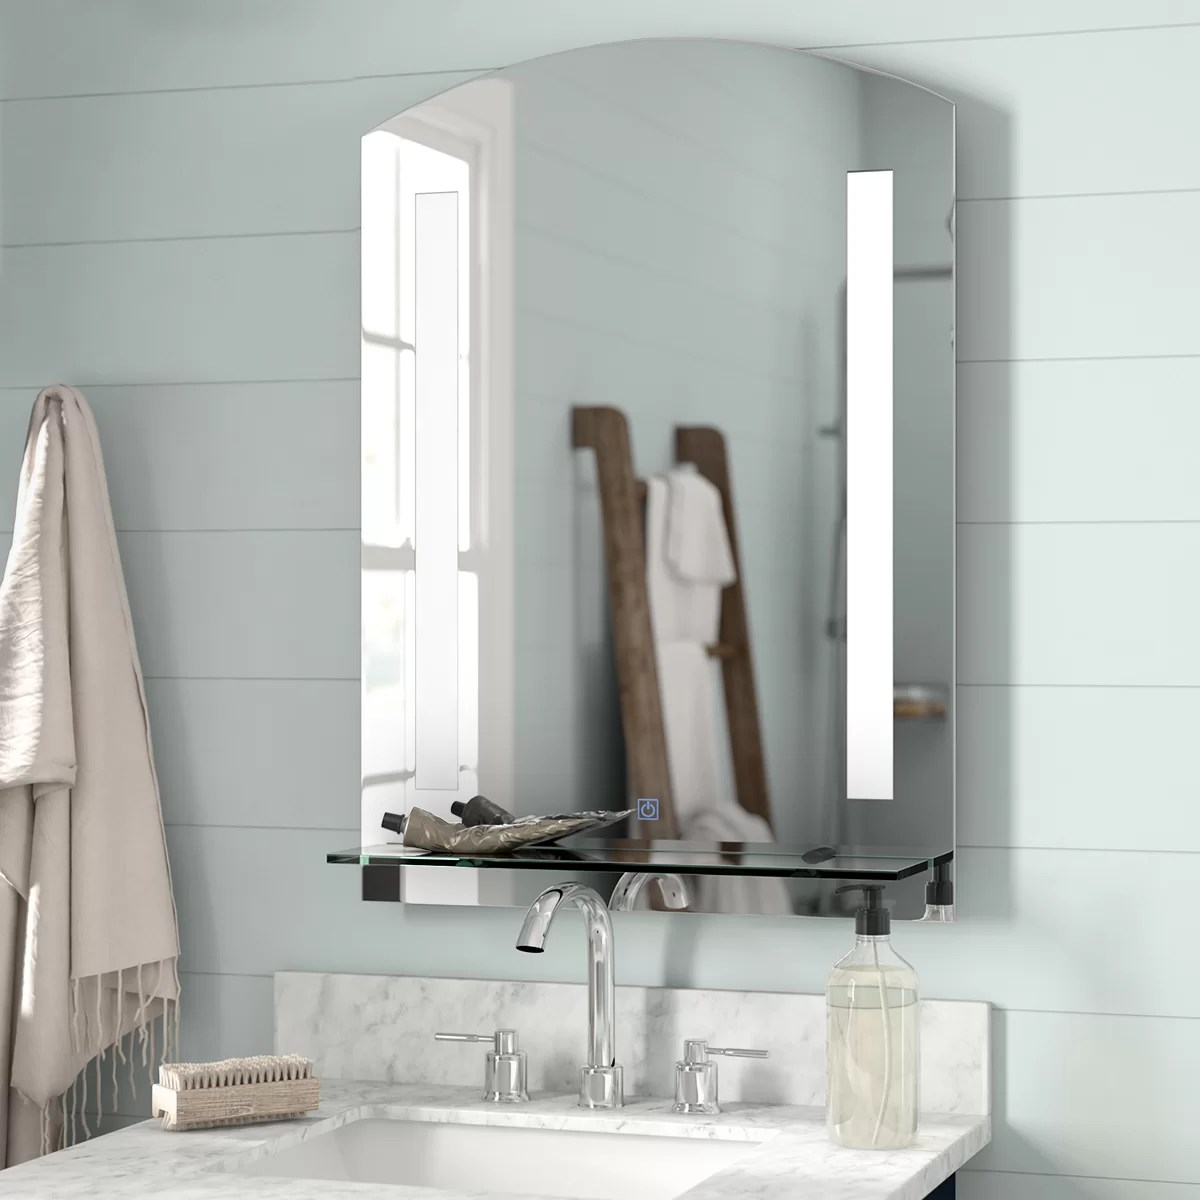 Illuminated Bathroom Mirror Wall Mounted Led Illuminated Bathroom Mirror